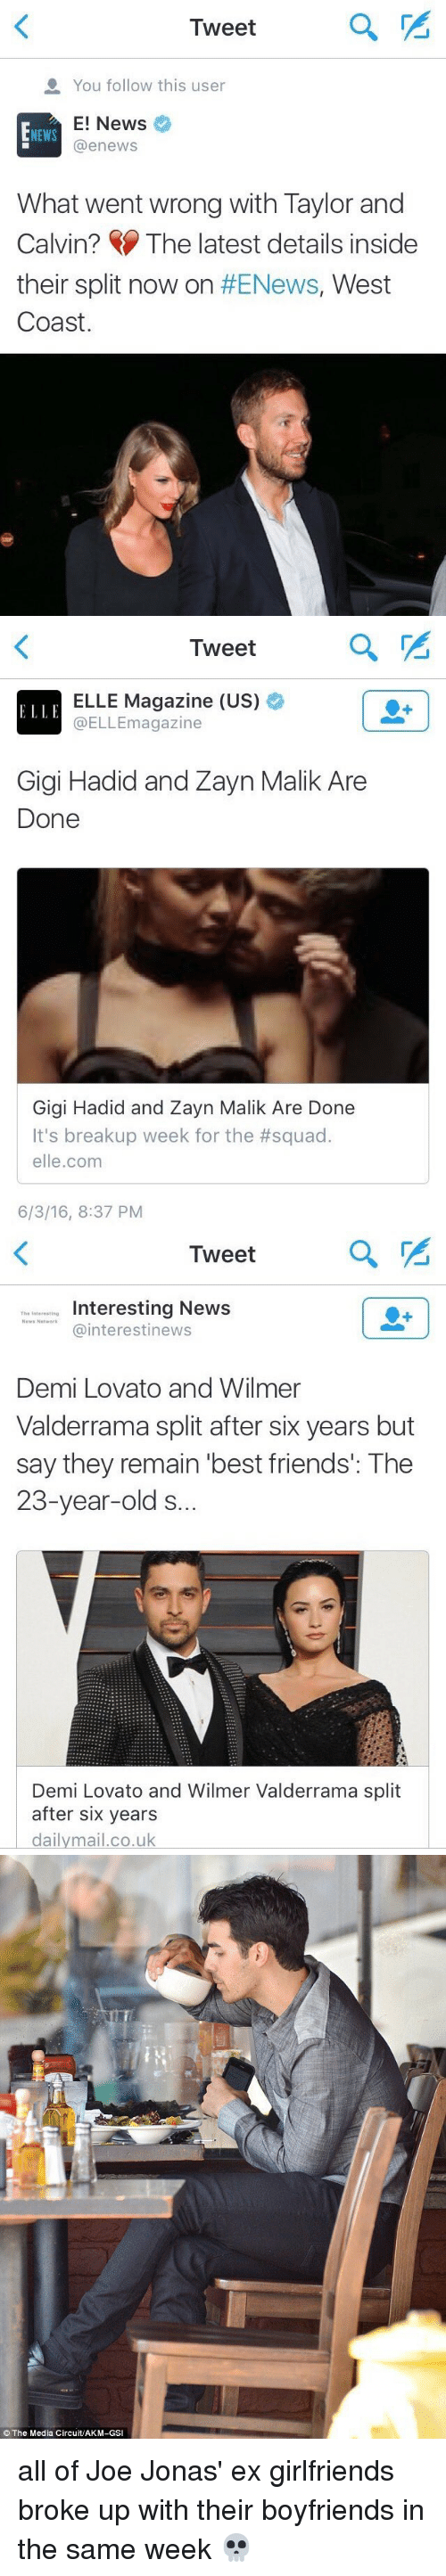 Best Friend, Demi Lovato, and Ex's: Tweet  a You follow this user  E! News  NEWS  @enews  What went wrong with Taylor and  Calvin? The latest details inside  their split now on  #ENews, West  Coast.   Tweet  ELLE  ELLE Magazine (US)  °  @ELLEmagazine  Gigi Hadid and Zayn Malik Are  Done  Gigi Hadid and Zayn Malik Are Done  It's breakup week for the #squad.  elle.com  6/3/16, 8:37 PM   Tweet  Interesting News  Th  s Network  Cainterestinews  Demi Lovato and Wilmer  Valderrama split after six years but  say they remain best friends': The  23-year-old s.  Demi Lovato and Wilmer Valderrama split  after six years  dailymail.co.uk   The Media Circuit/AKM-GSI all of Joe Jonas' ex girlfriends broke up with their boyfriends in the same week 💀